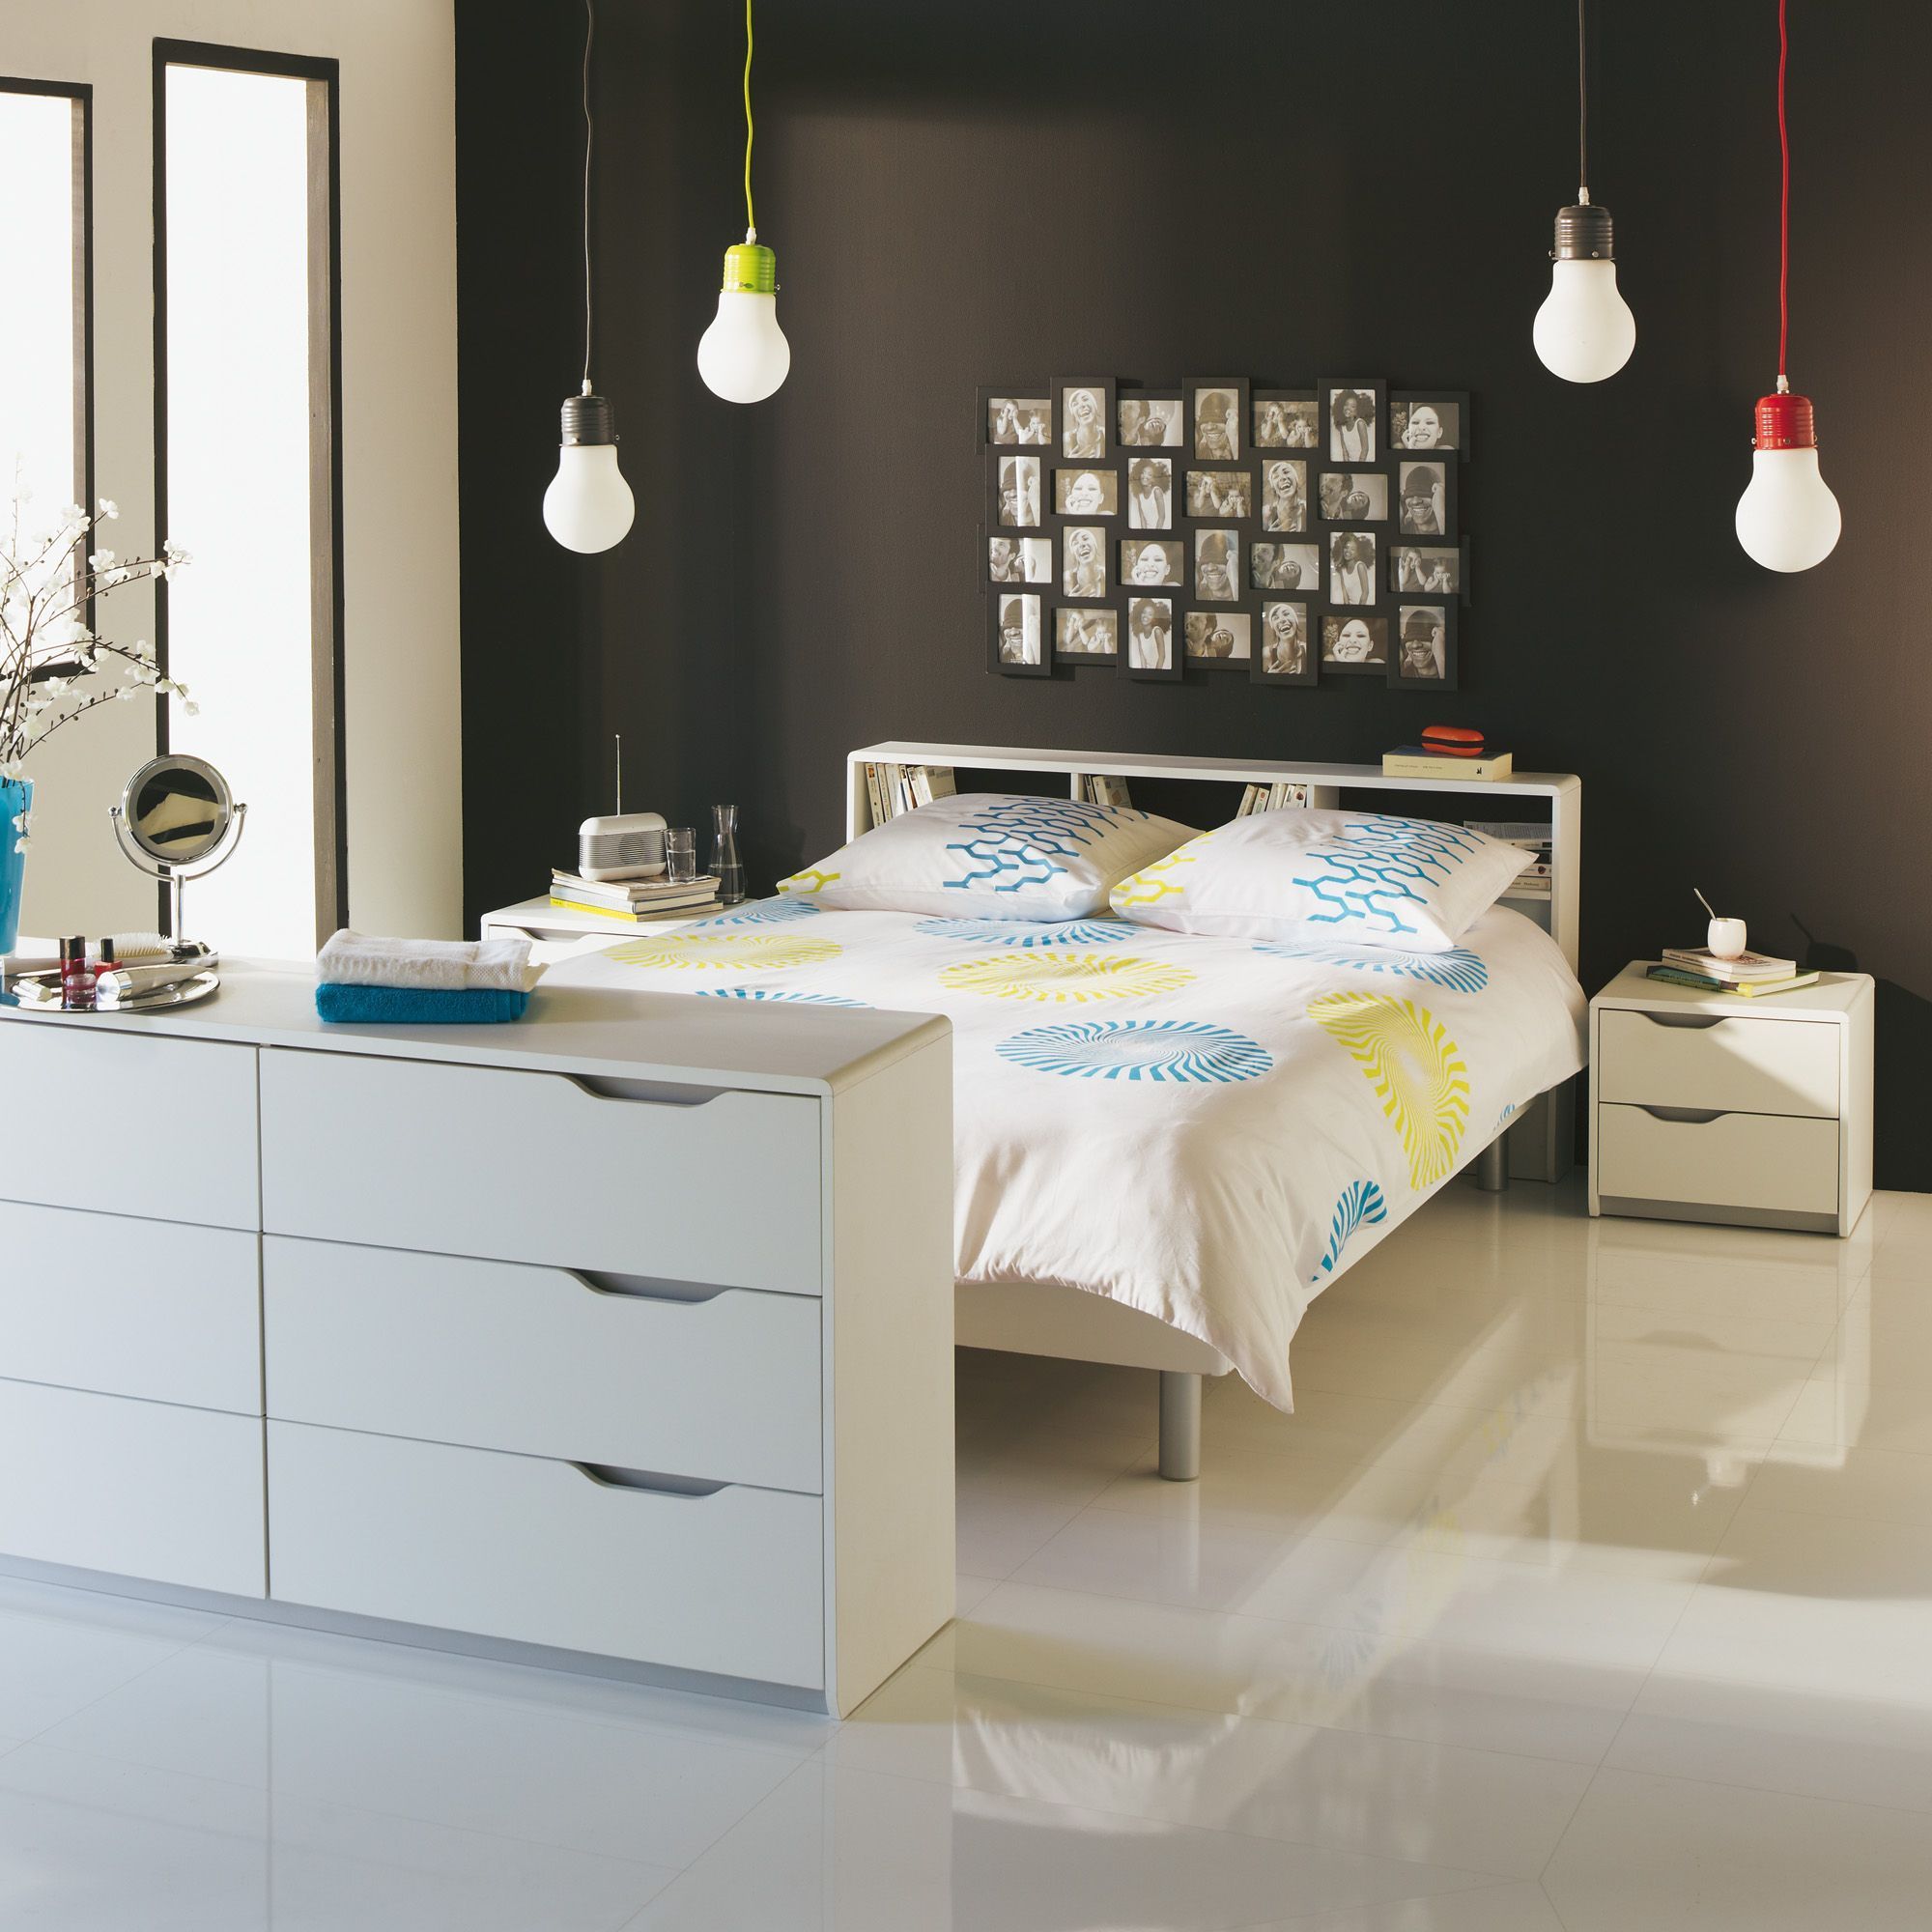 Chambre style moderne blanche Blanc - Cool - Les commodes ...